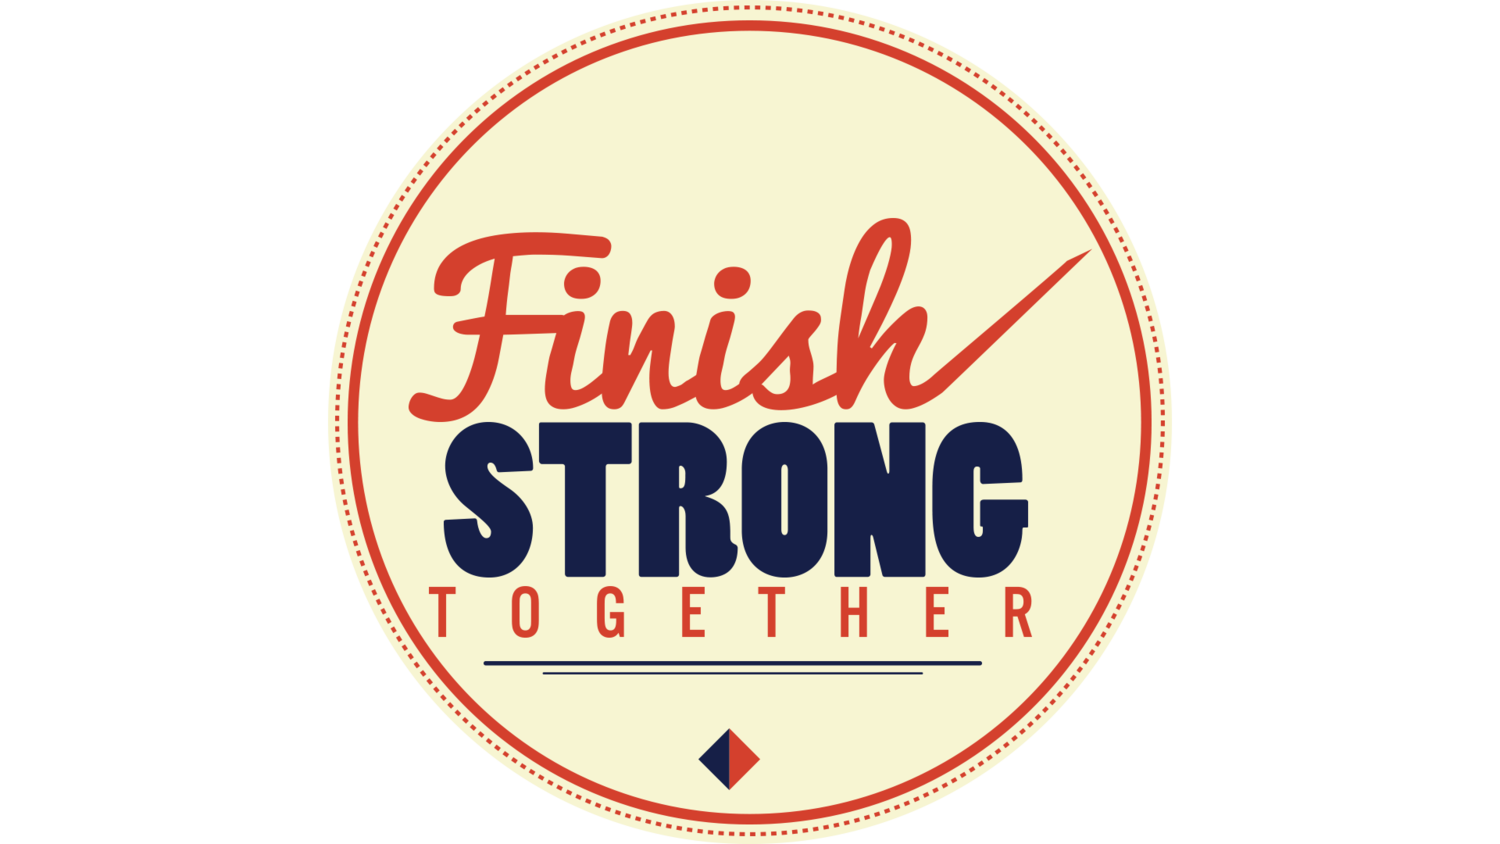 Finish Strong Together